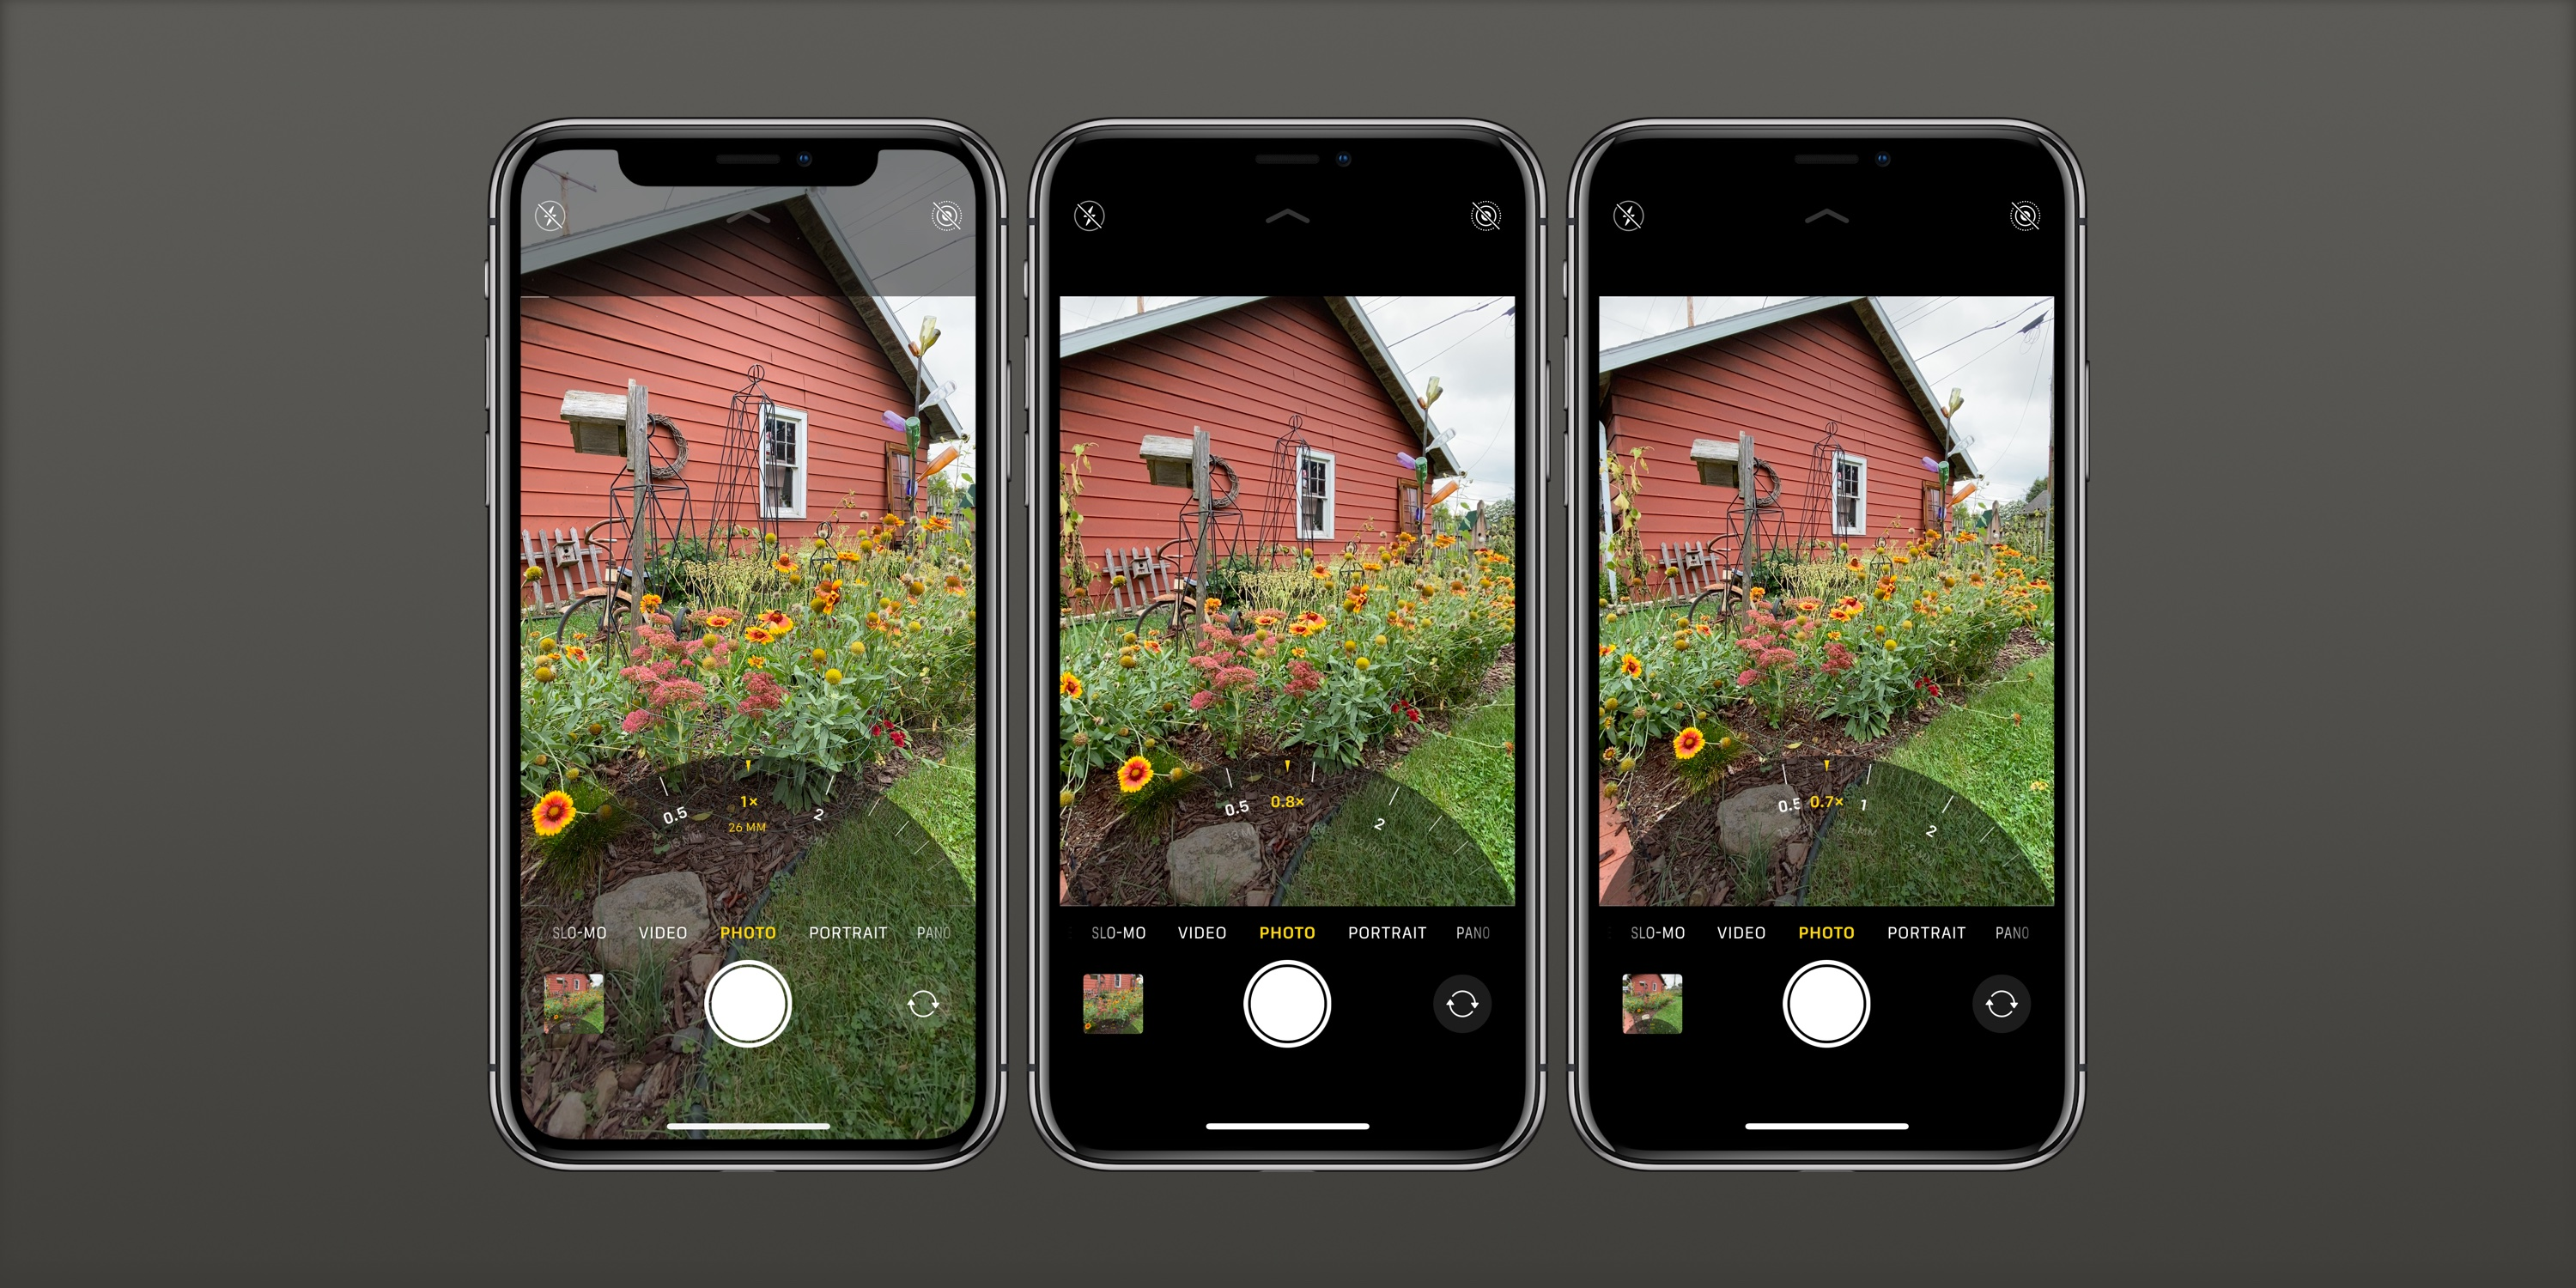 How to use the ultra wide camera on iPhone 11 and 11 Pro - 9to5Mac